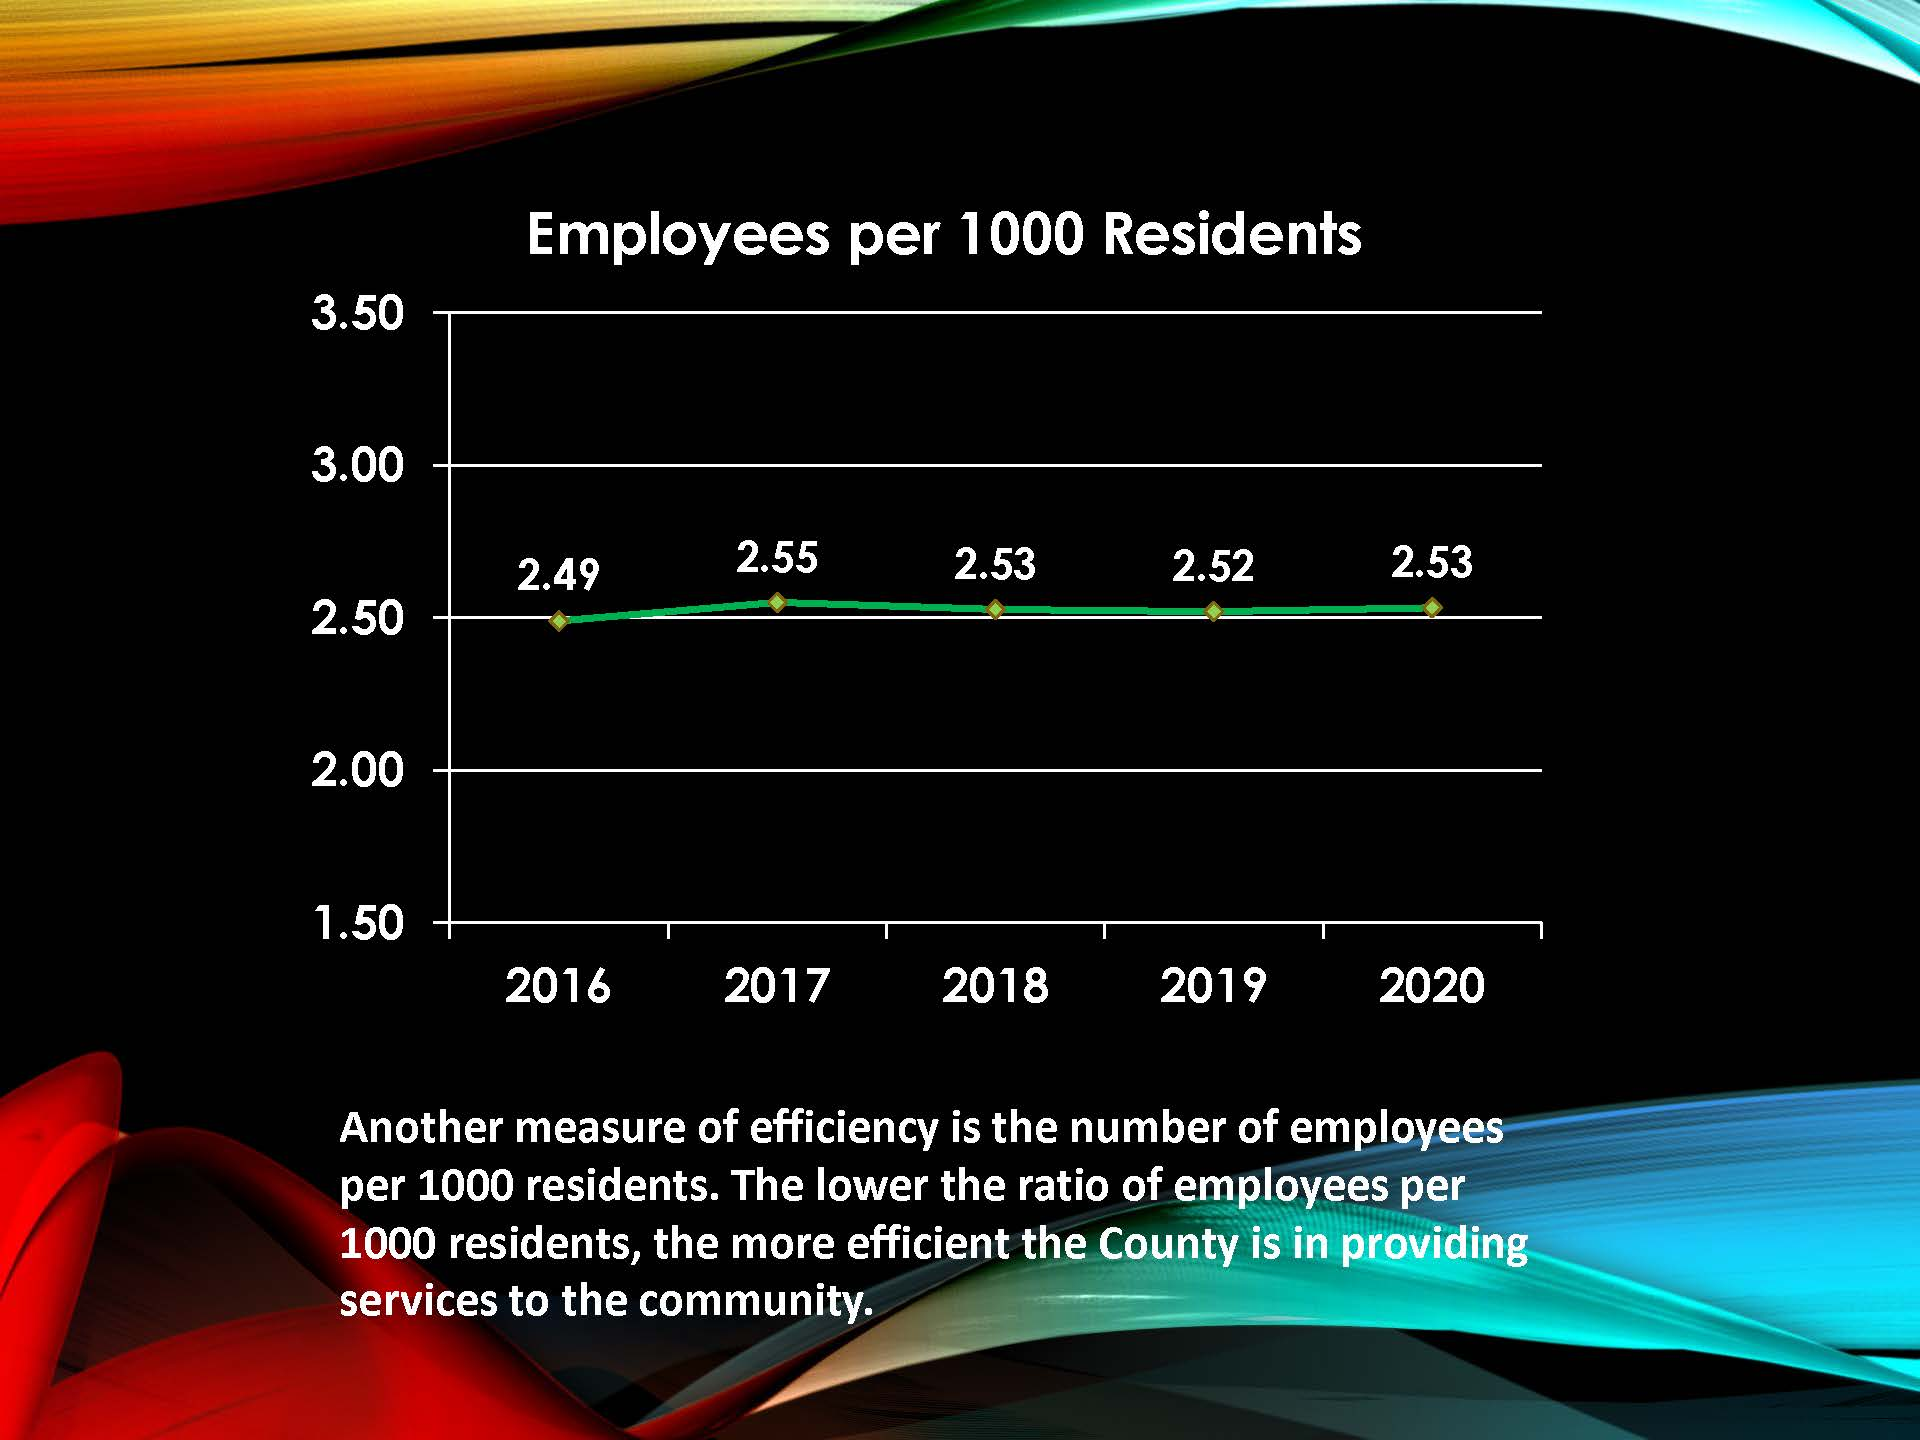 Employees per 1,000 Residents Chart